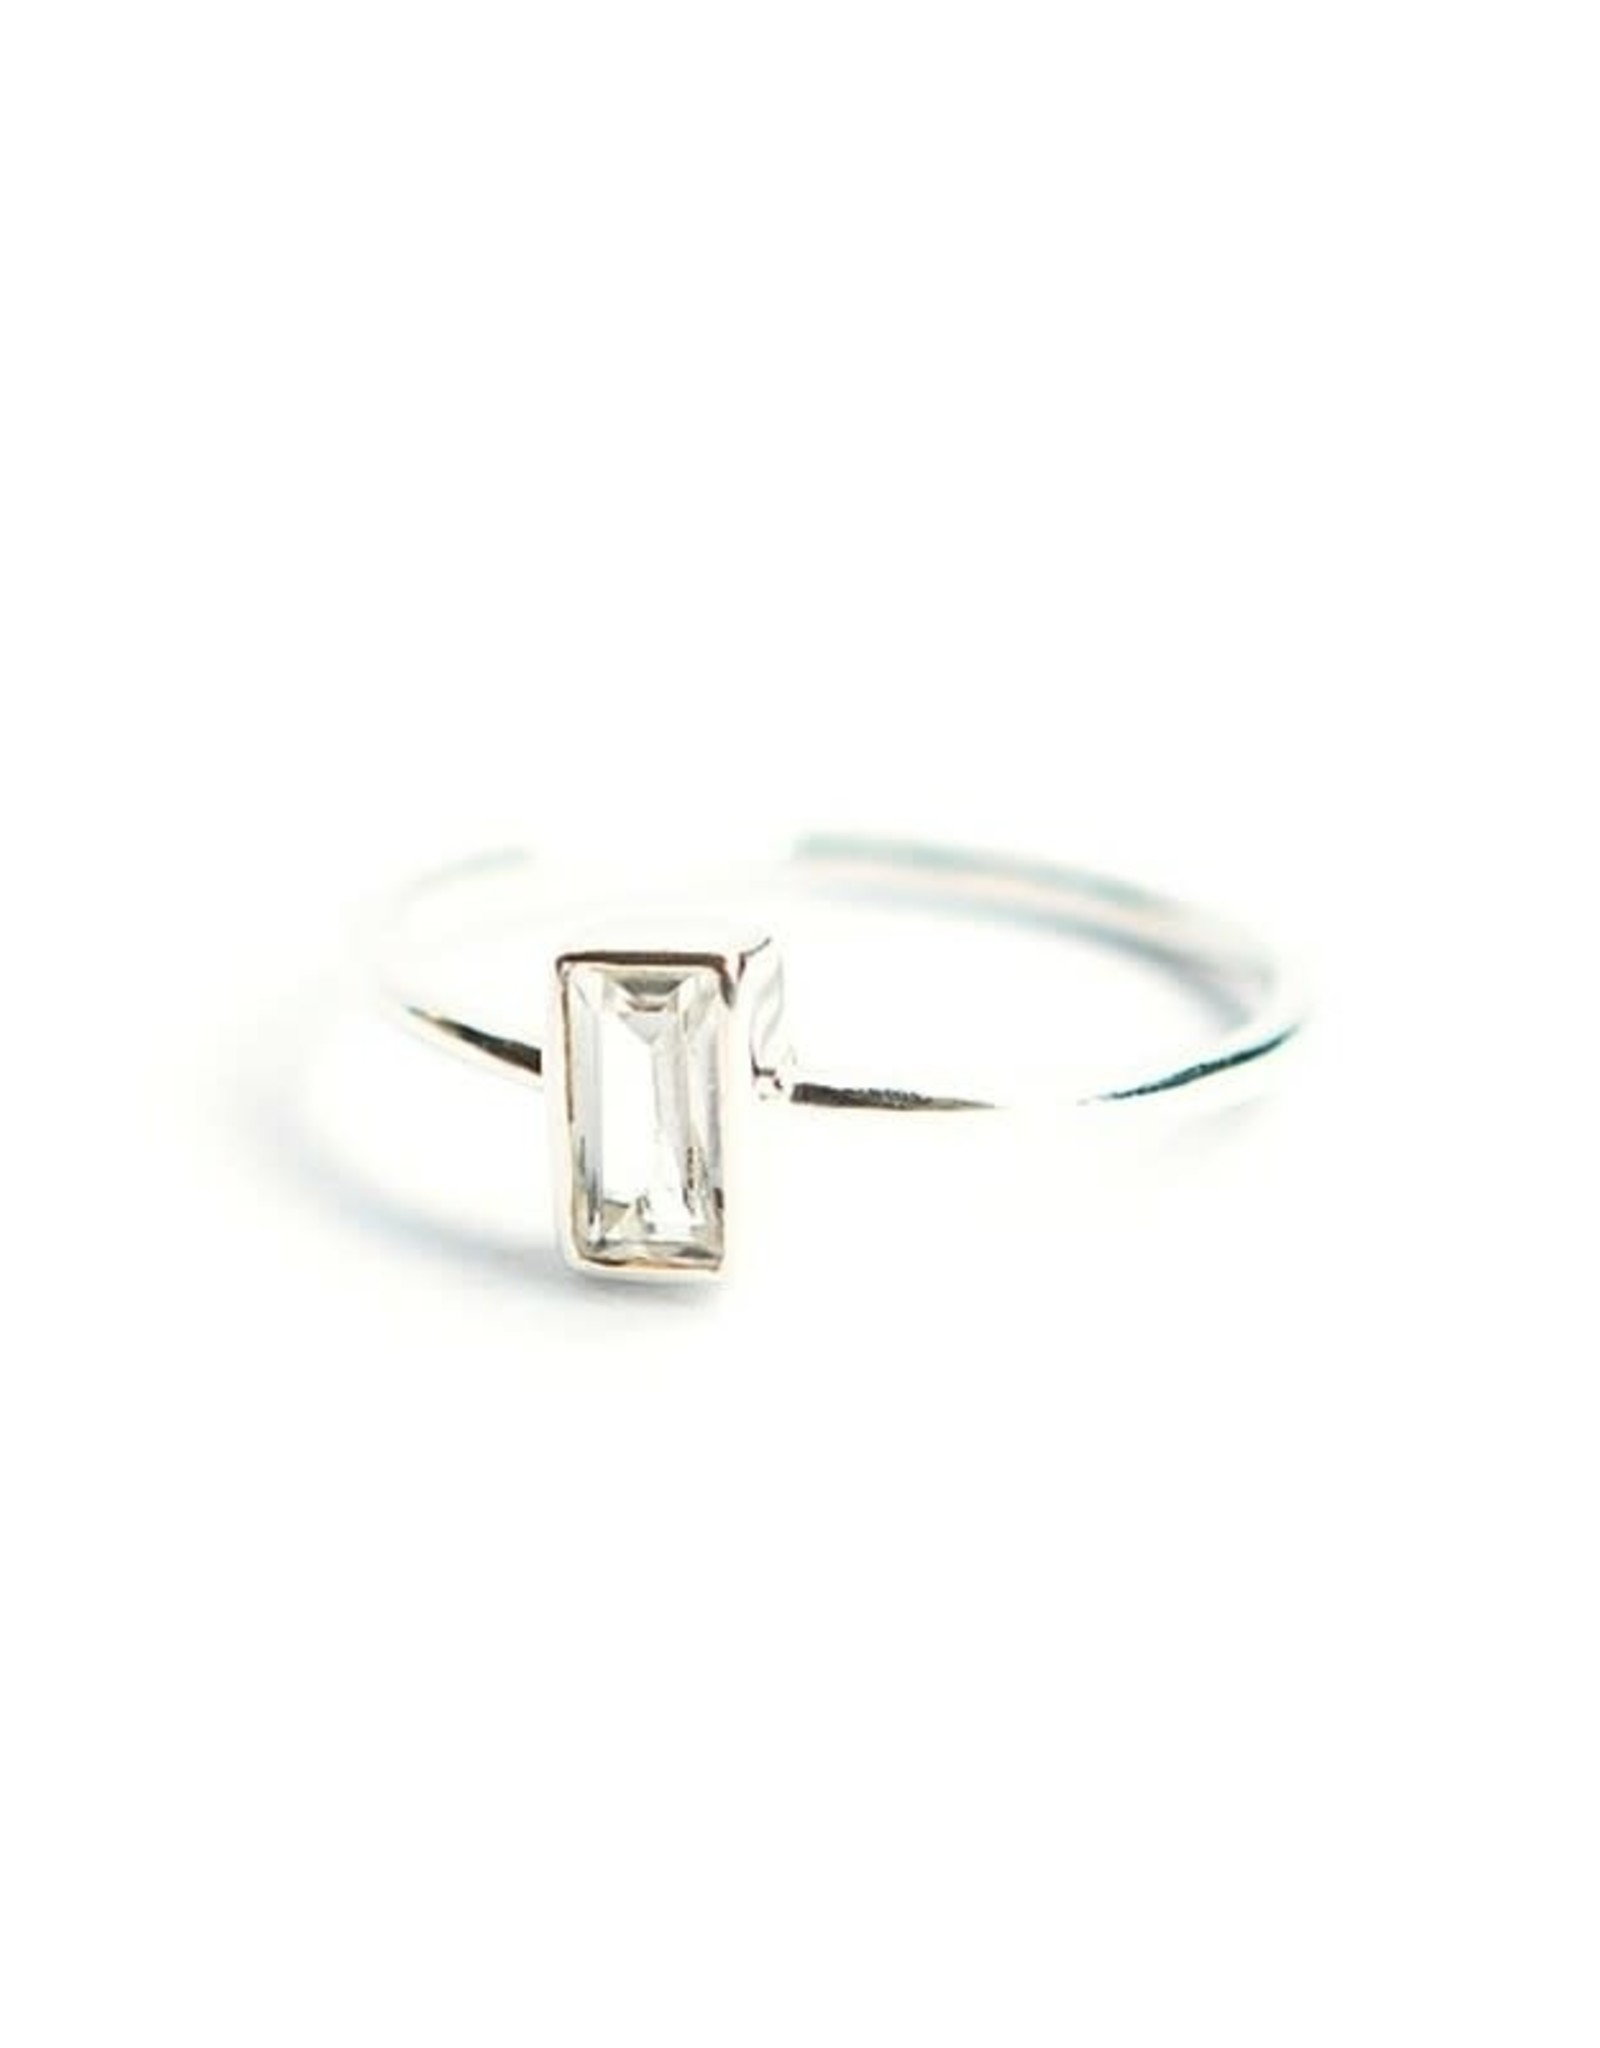 Sterling Silver Prism Ring, Crystal, Size 8, India